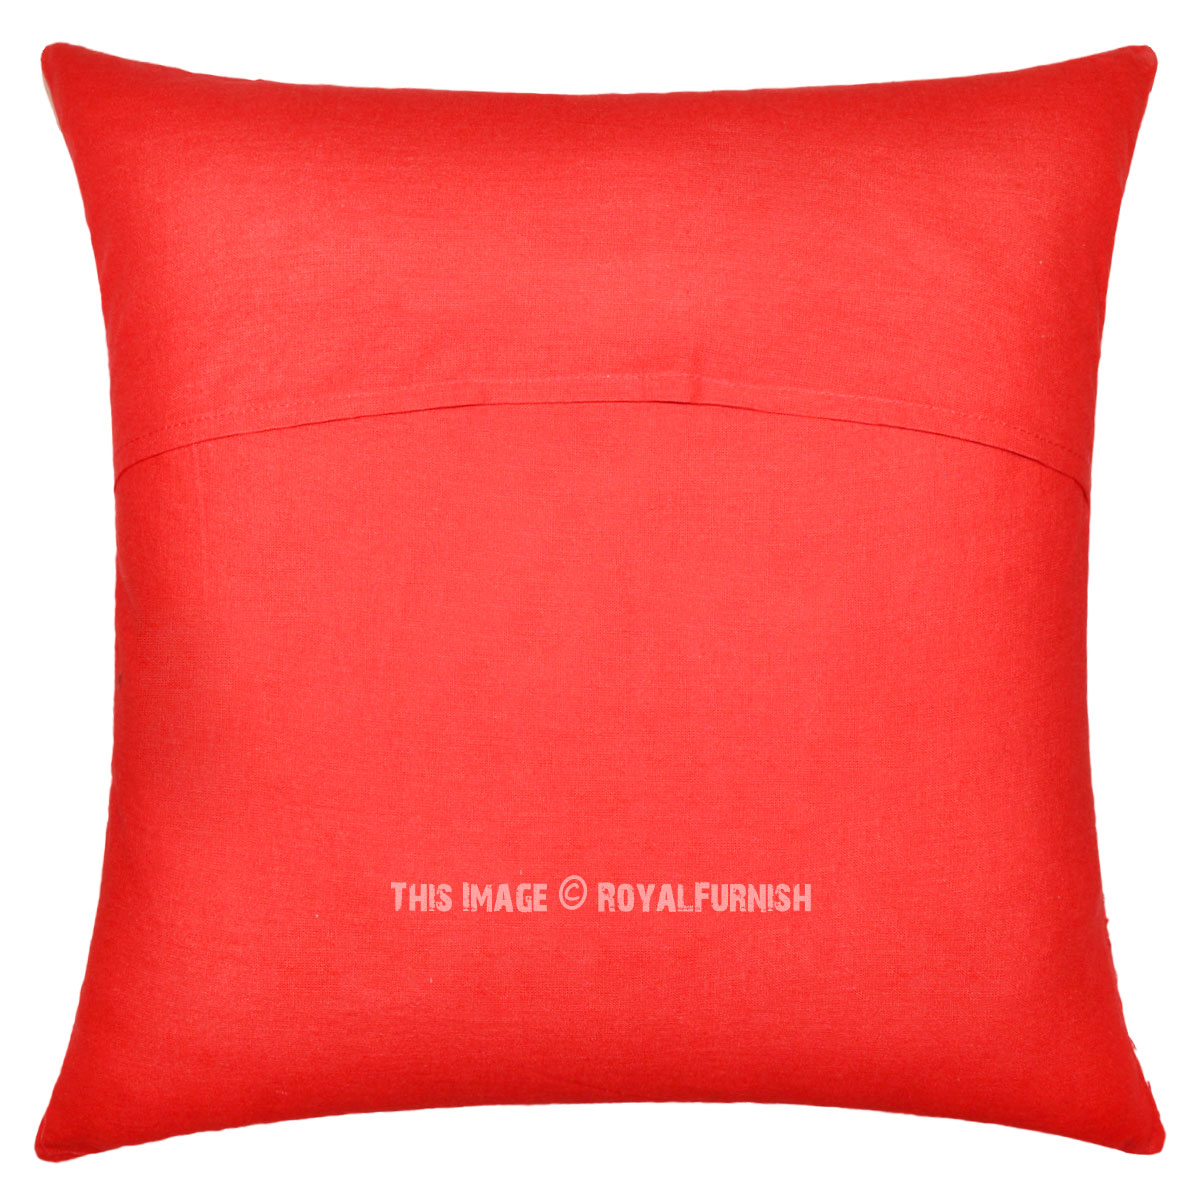 16quot Red Indian Ikat Kantha Thread Cotton Cushion Pillow